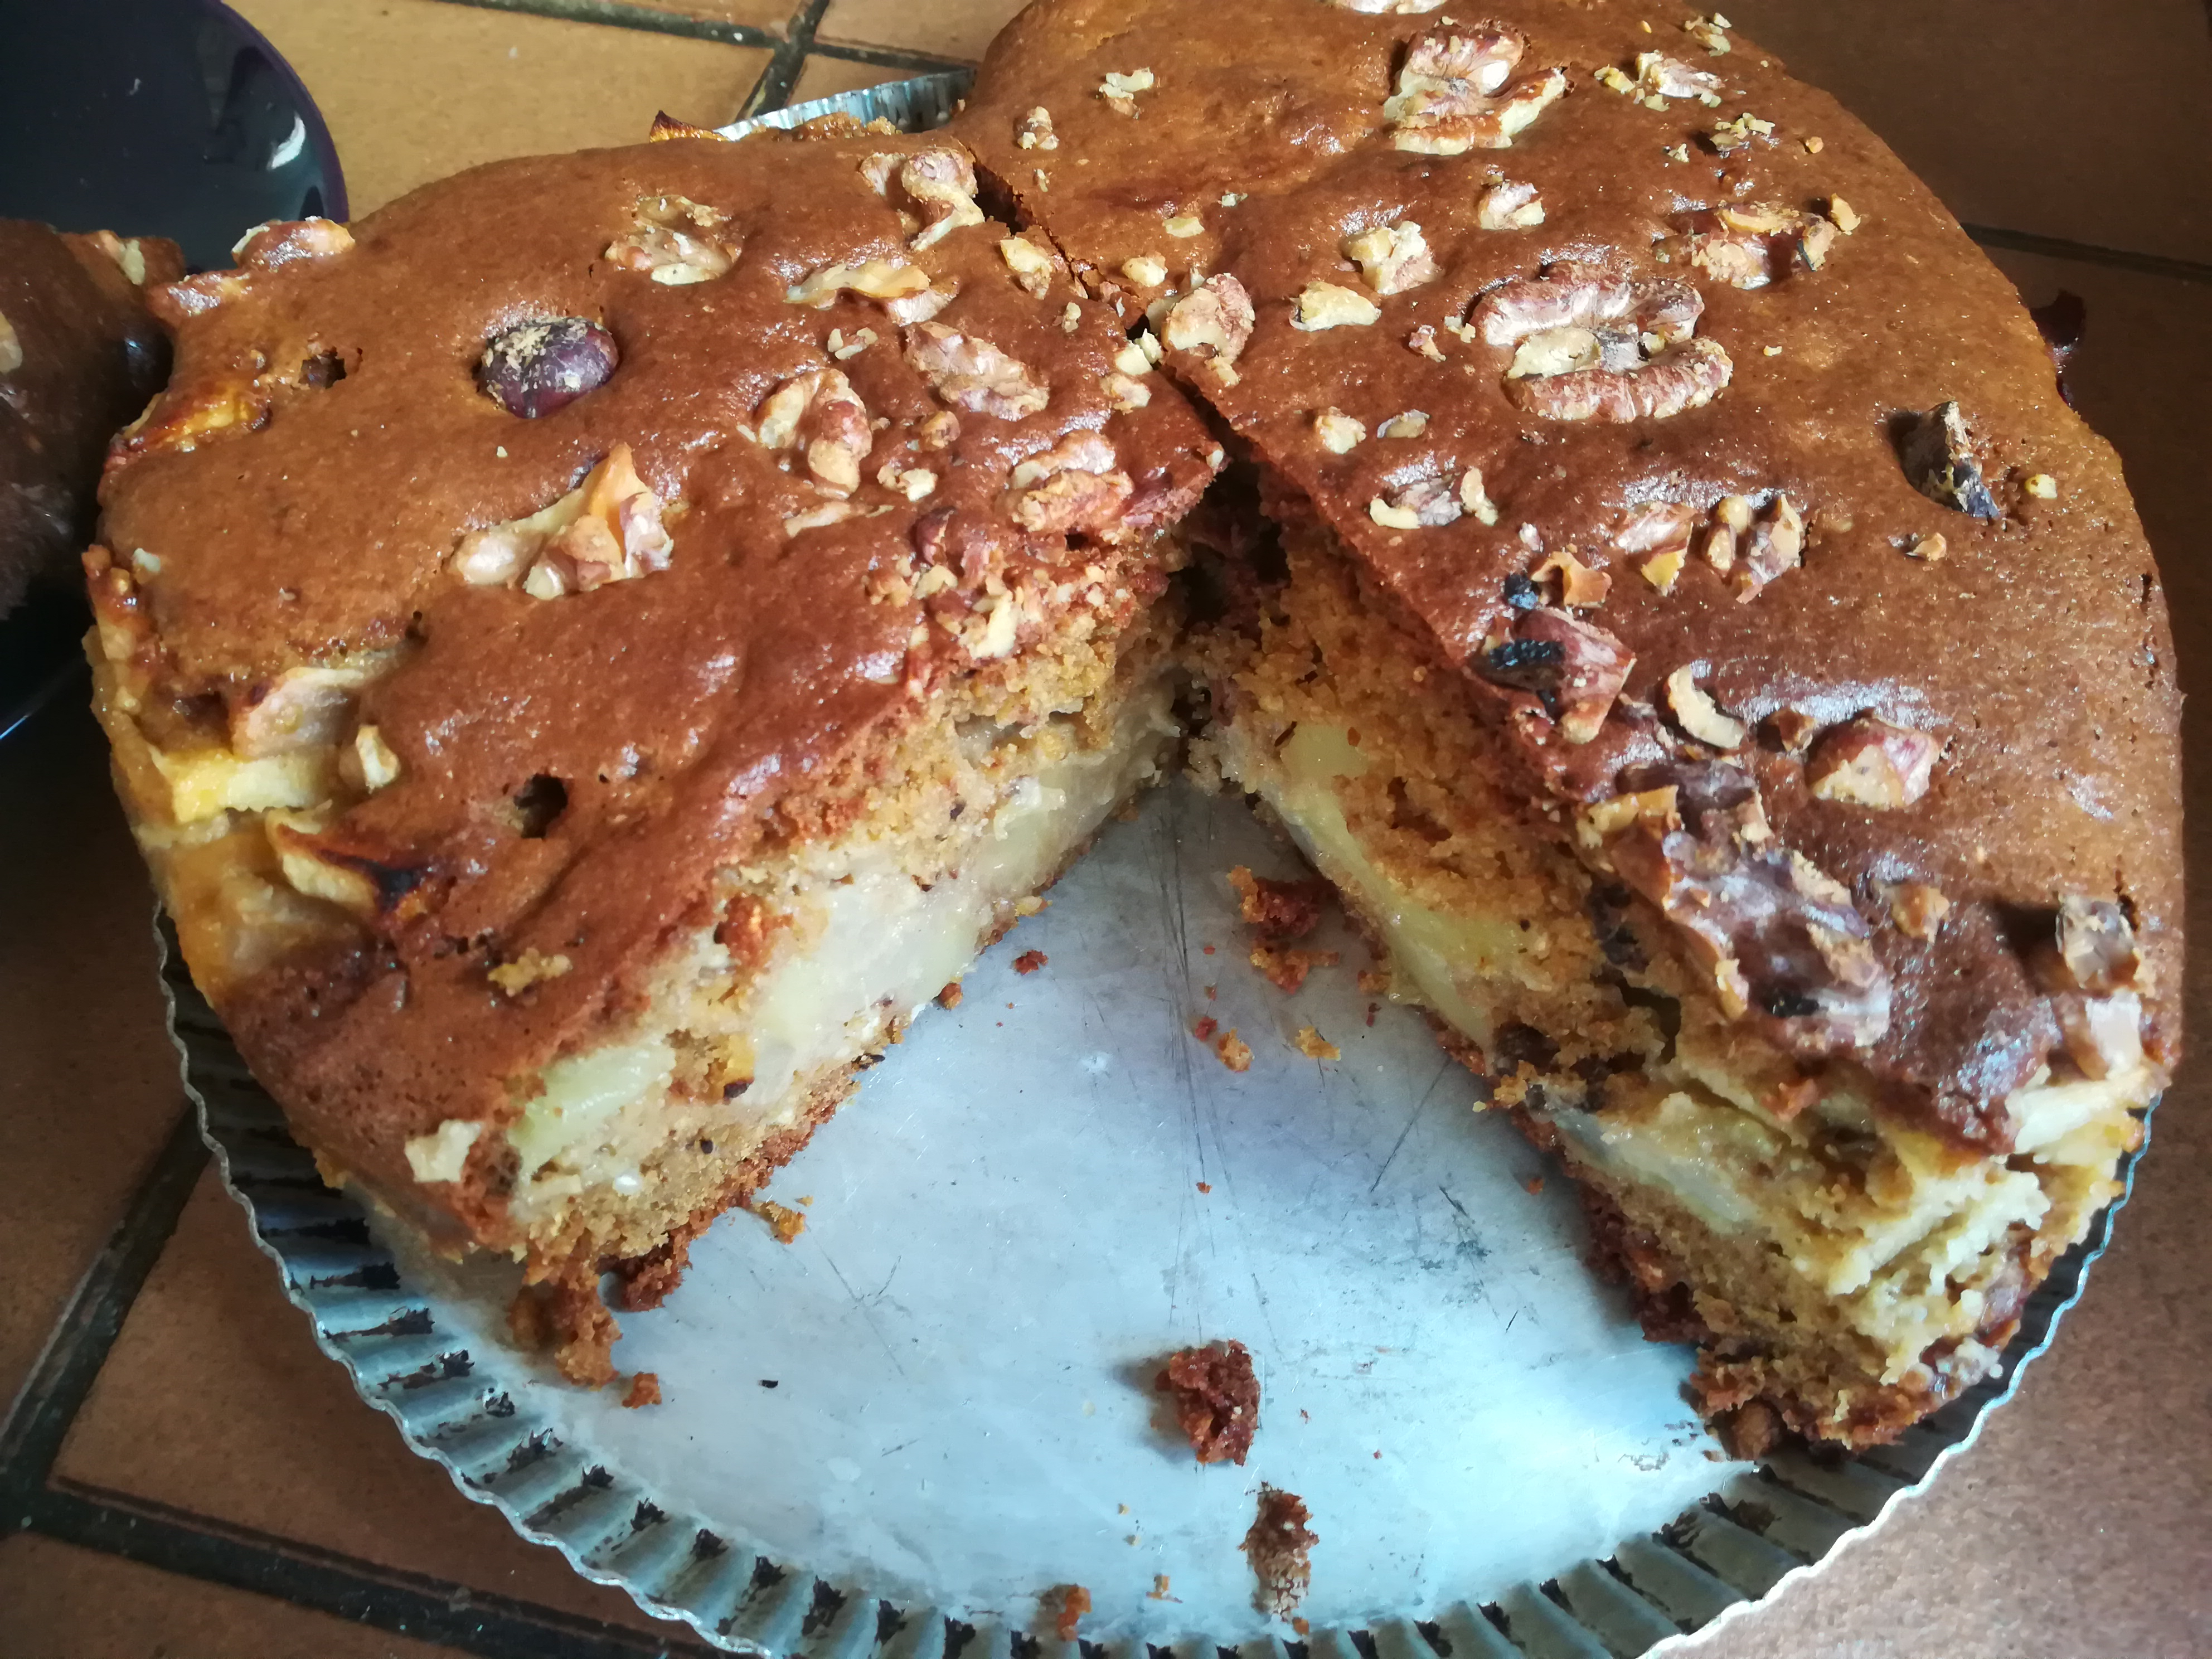 Karina's Jewish Apple Cake Recipe with Sour Cream'